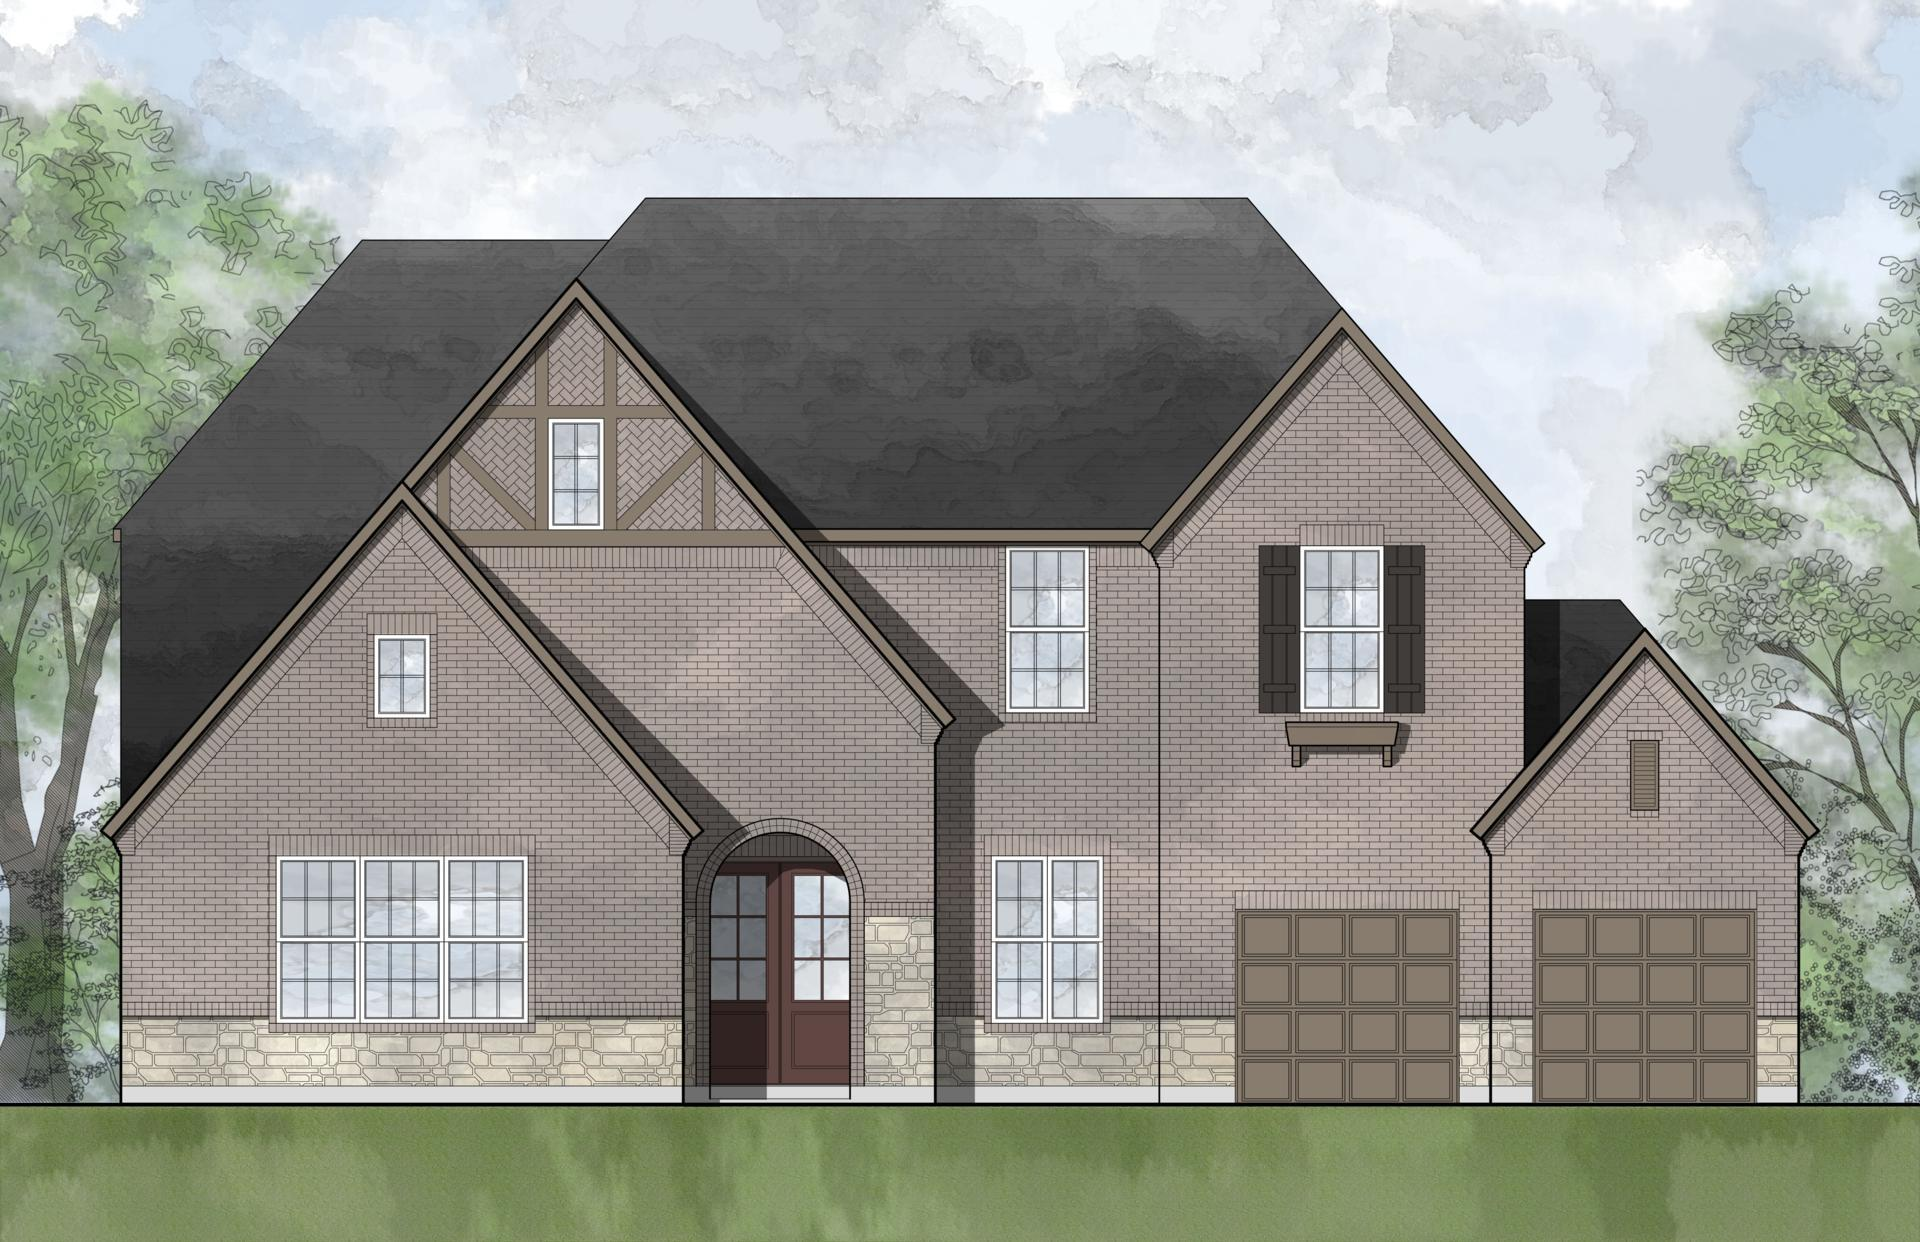 Single Family for Active at Meridiana - Briargate 3510 Halladay Way Iowa Colony, Texas 77583 United States